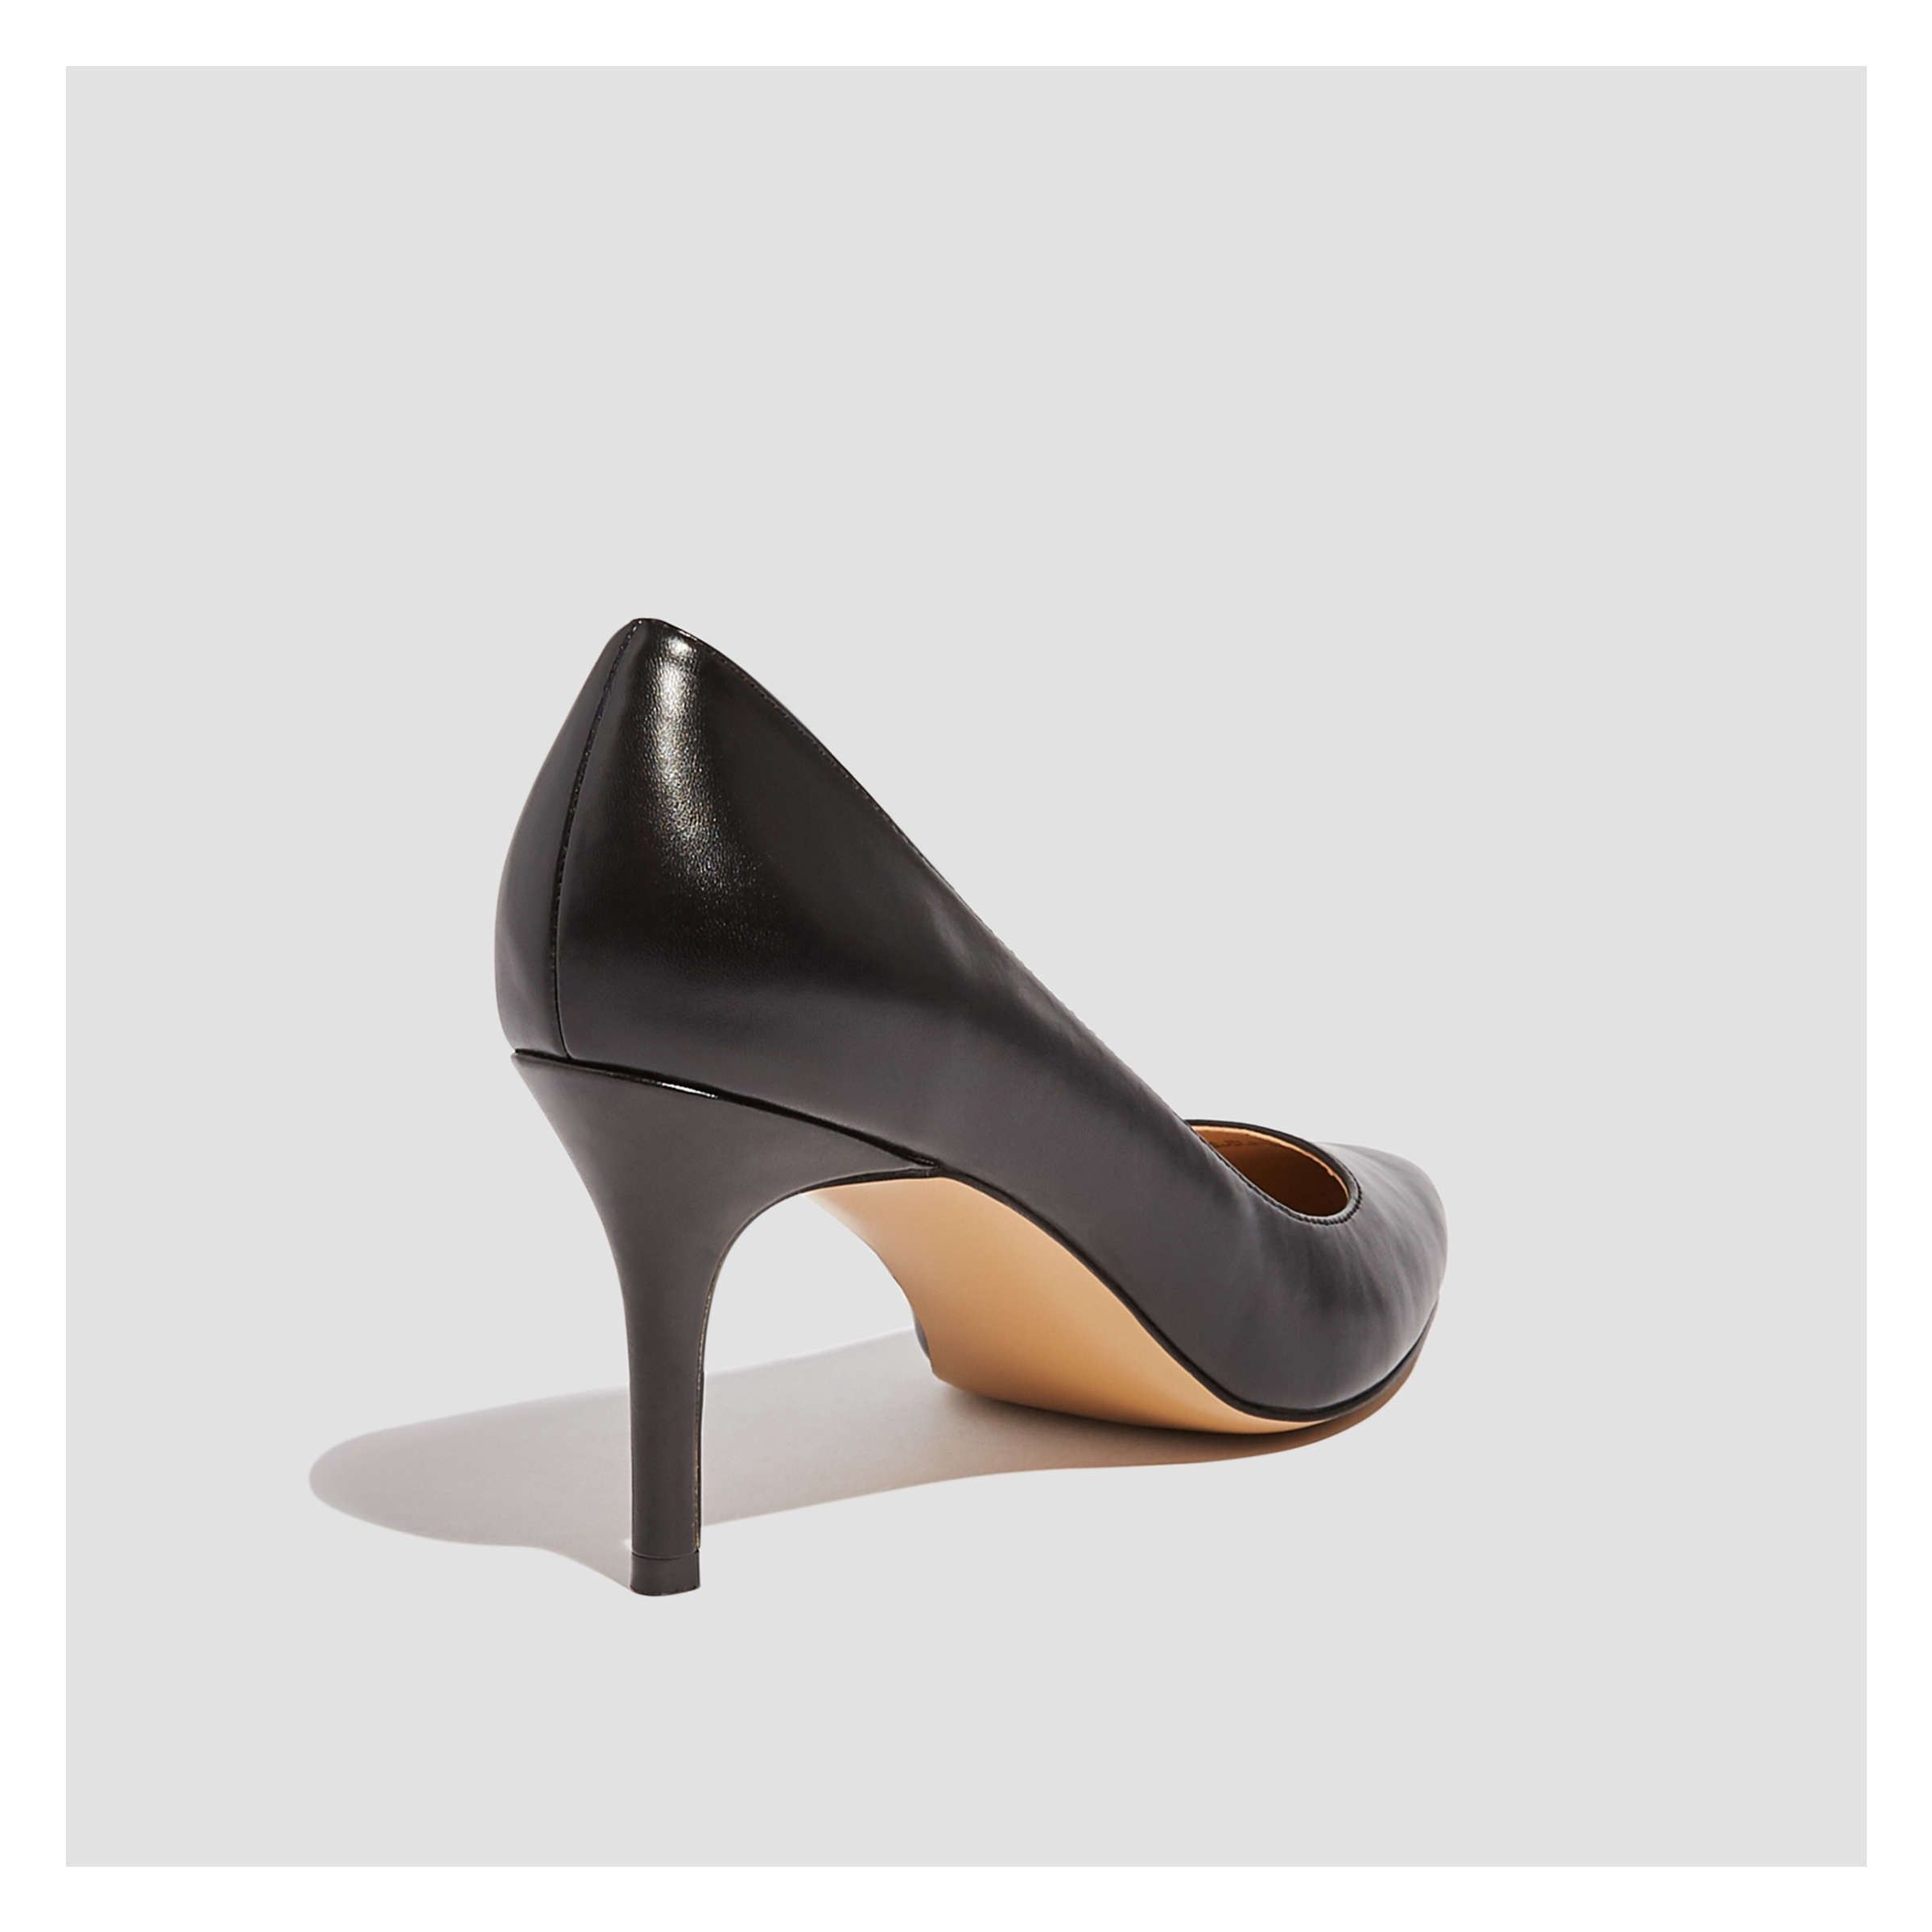 Joe Fresh Mid Heel Pumps 10 Black Pumps Heels Mid Heels Pumps Heels